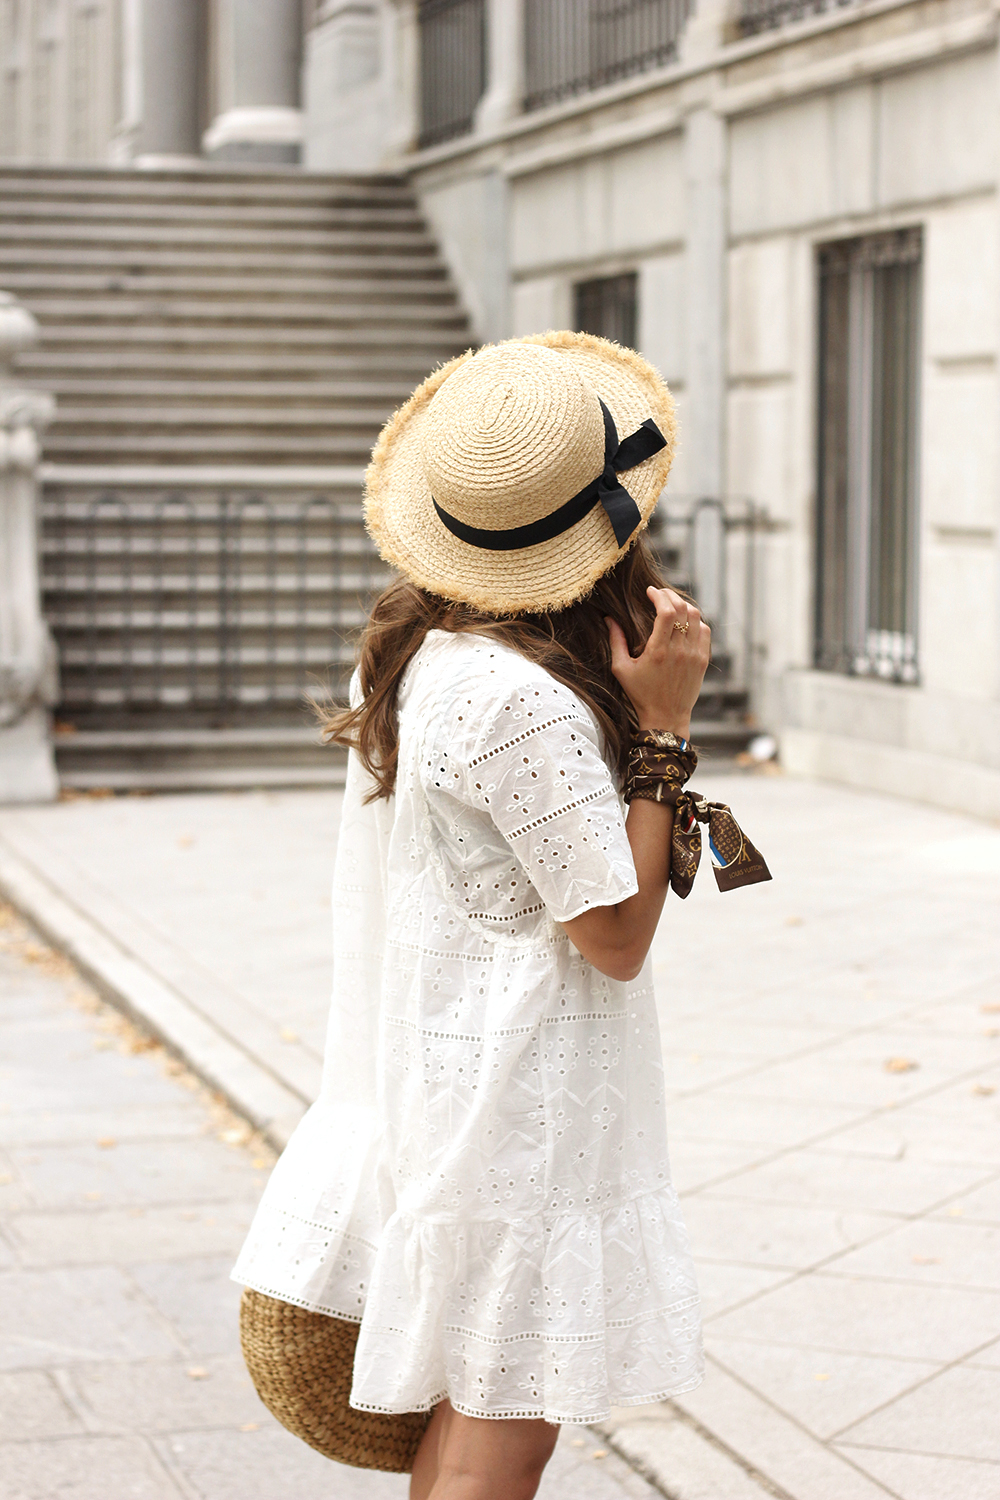 White summer dress canotier street style outfit 201910